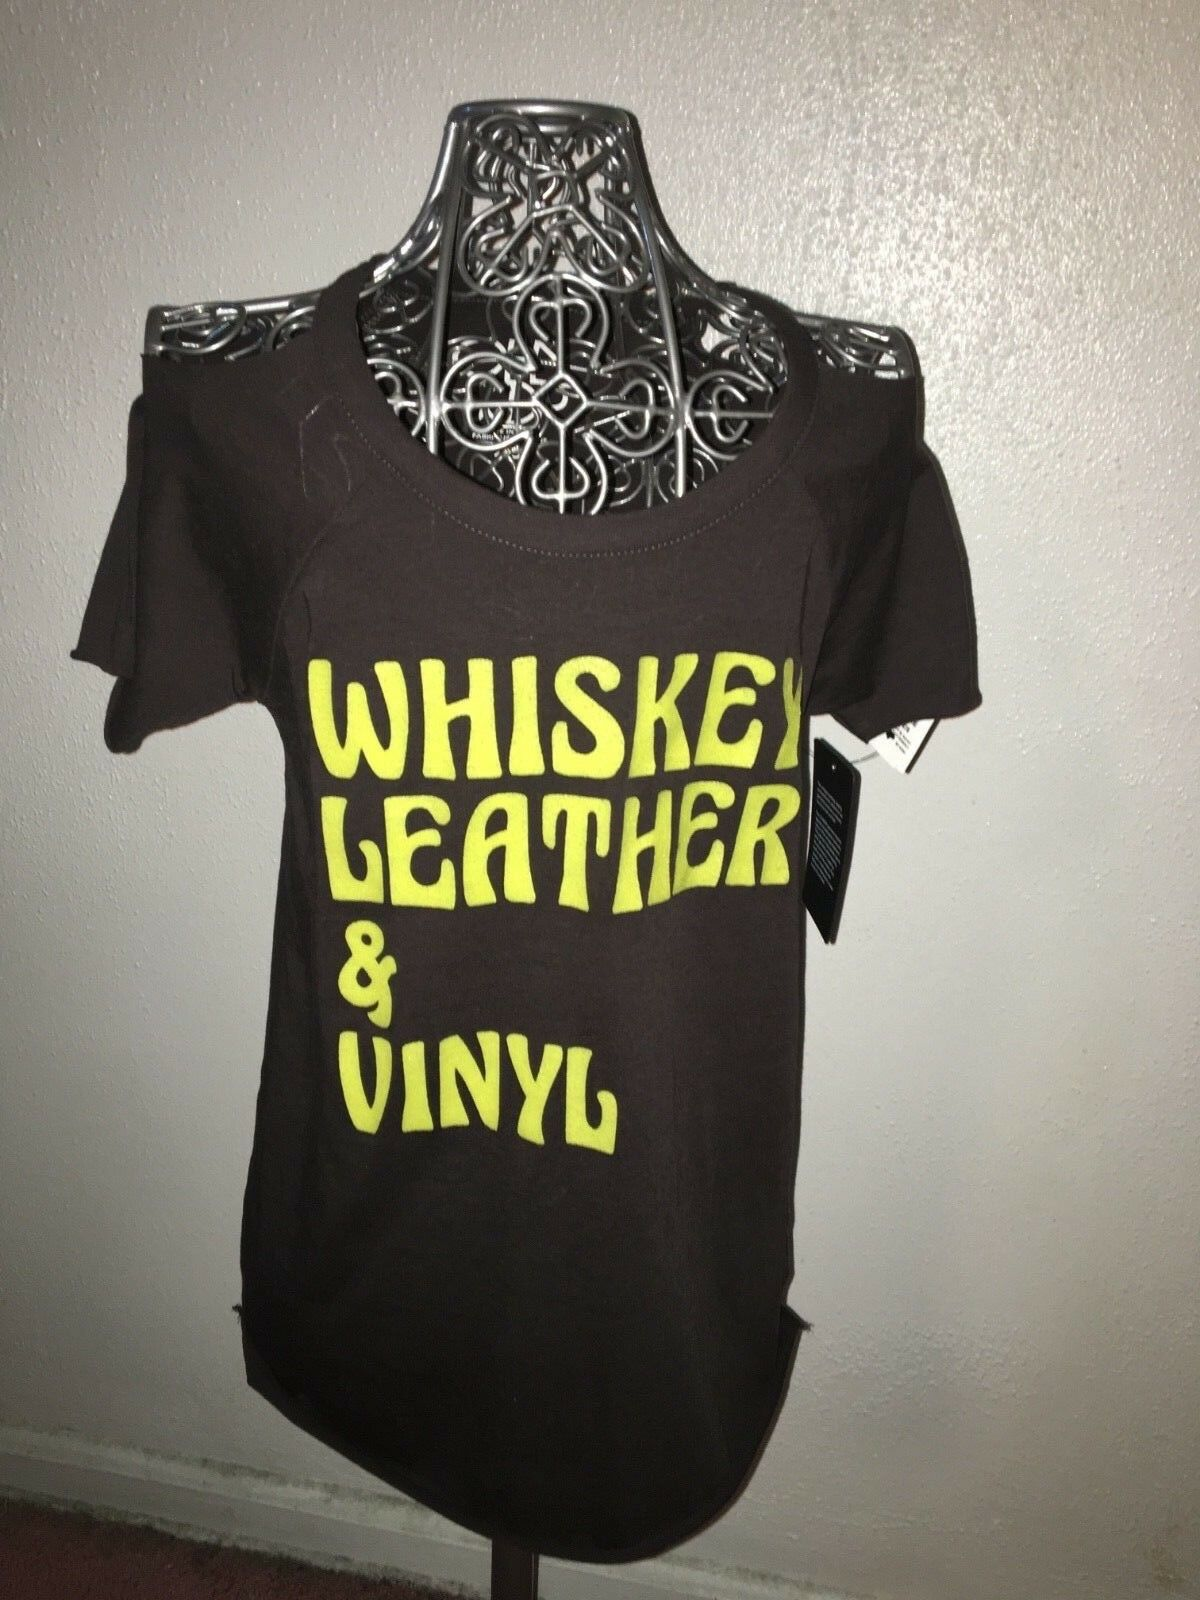 NWT Chaser Whiskey Leather & Vinyl Cold Shoulder Tshirt Sz S RP